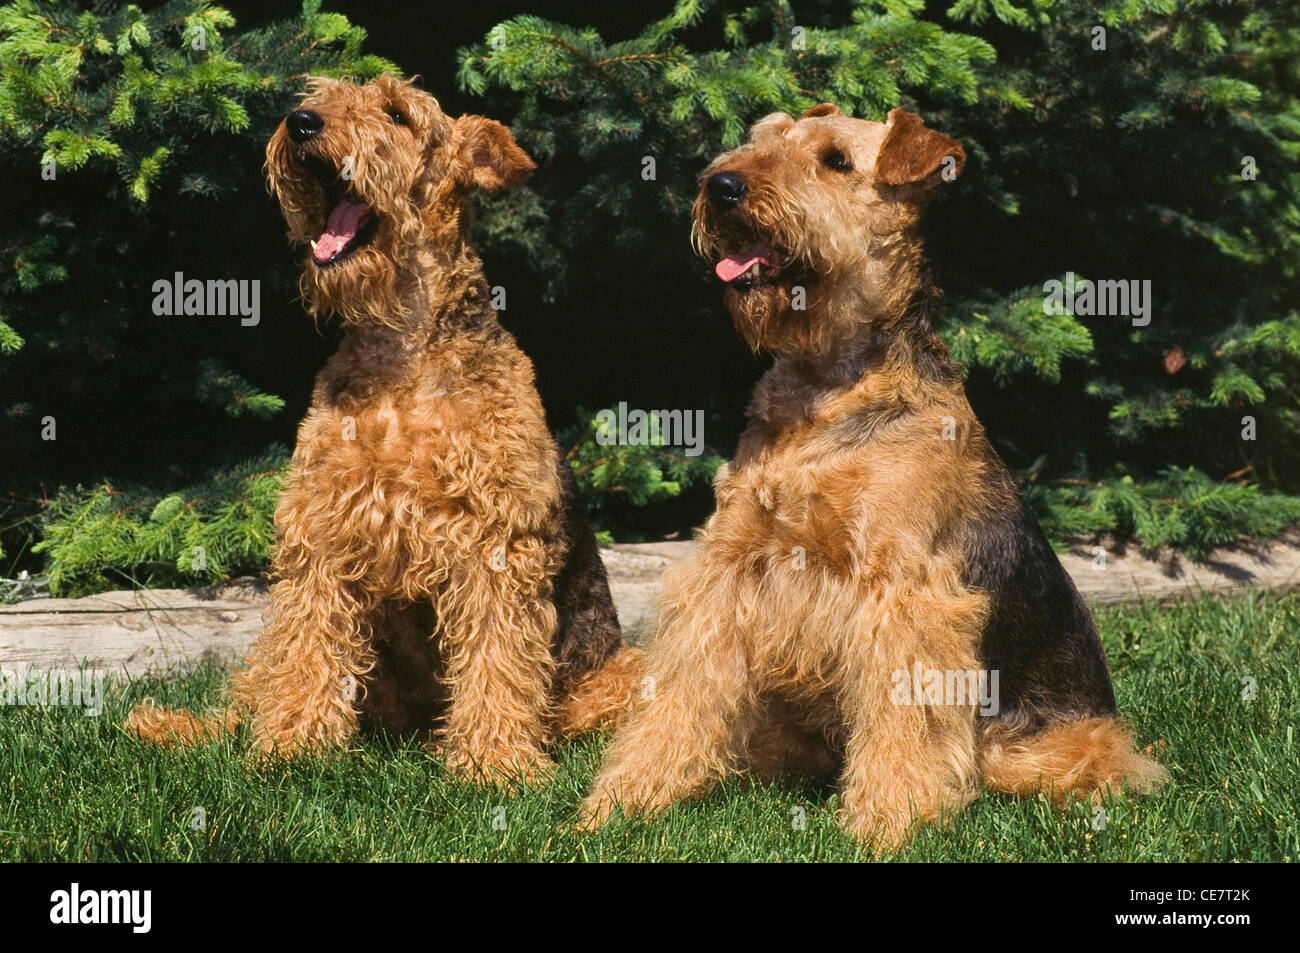 Two Airedale Terriers sitting - Stock Image